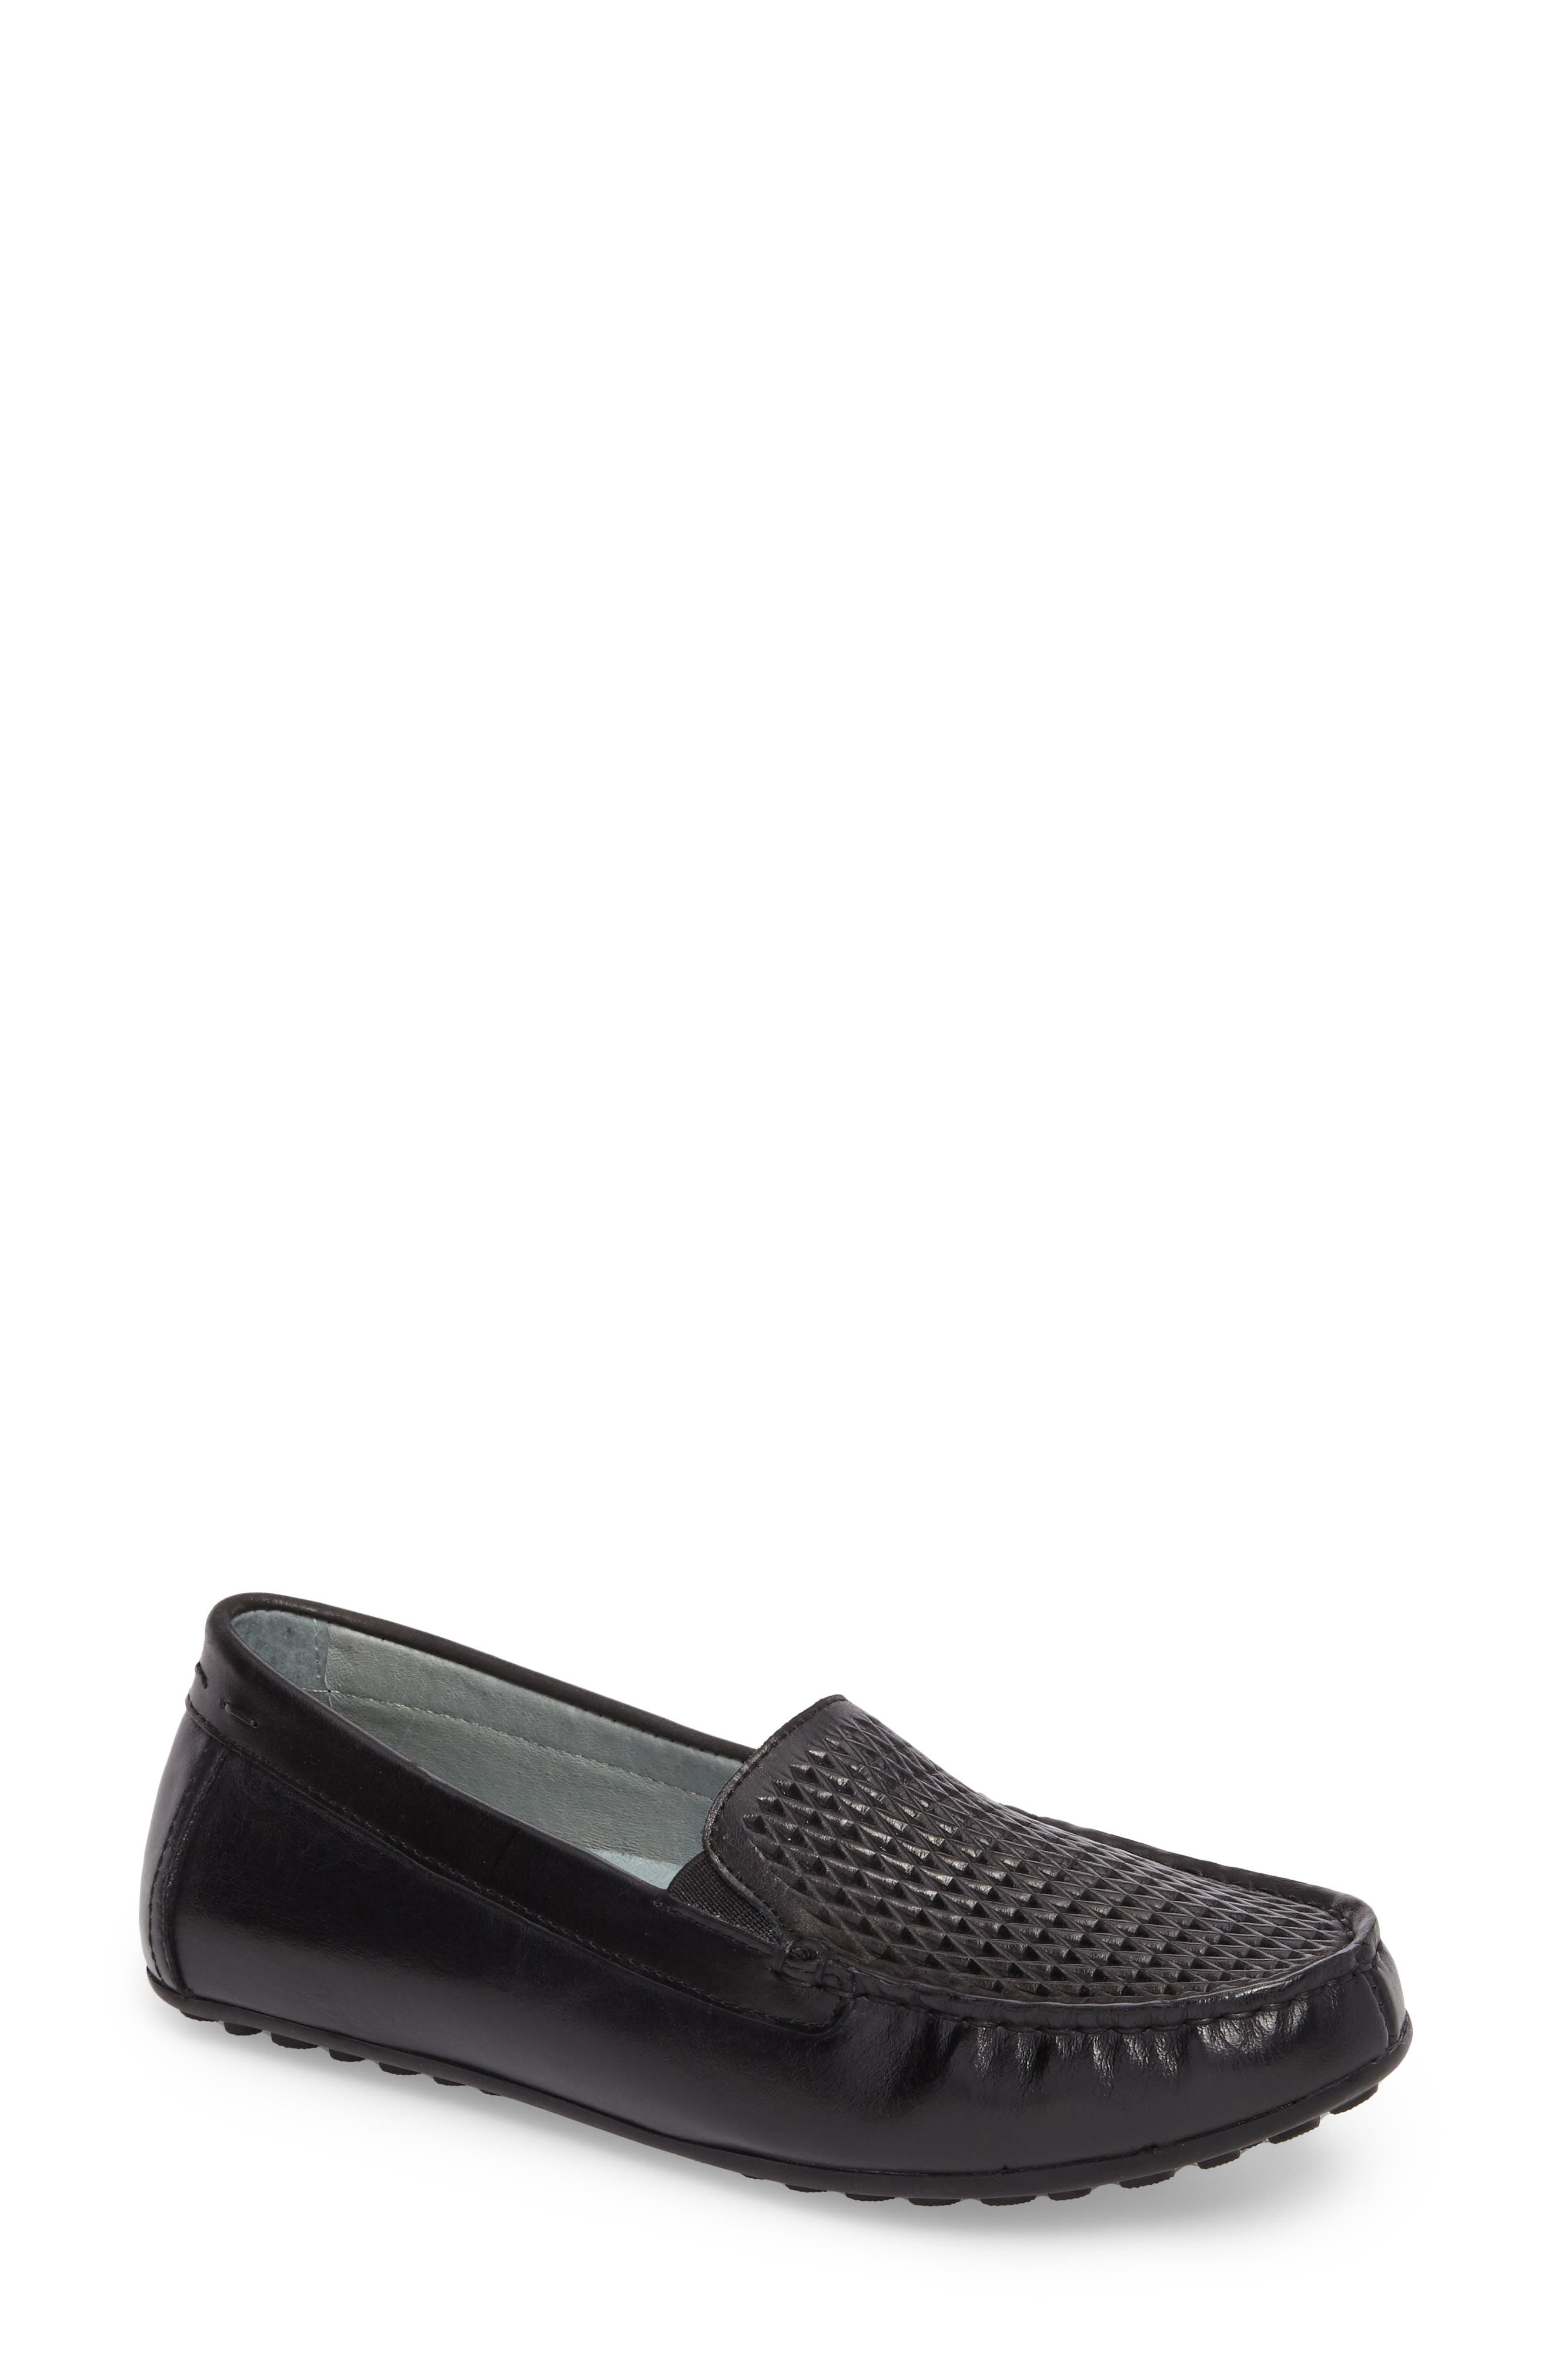 DAVID TATE Posh Driving Loafer, Main, color, BLACK LEATHER